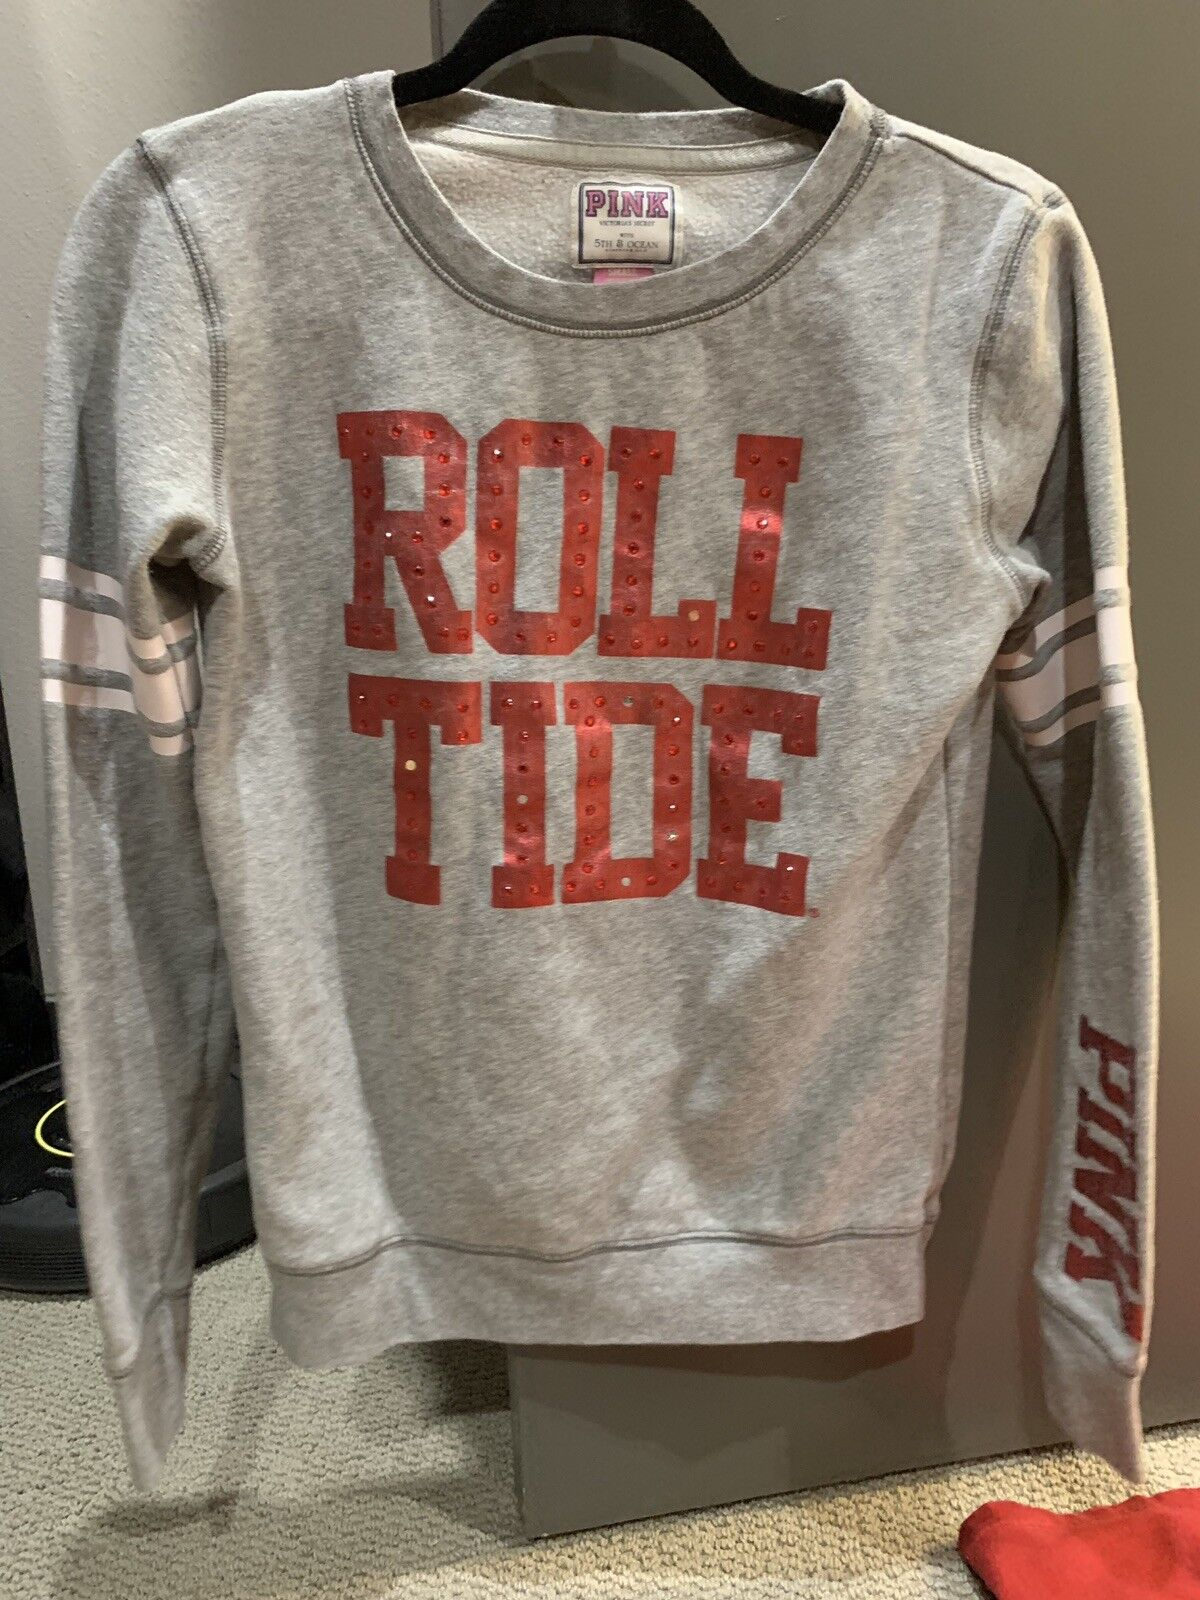 Victoria's Secret PINK Alabama ROLL TIDE Sweatshirt Size Small Grey Red Cute